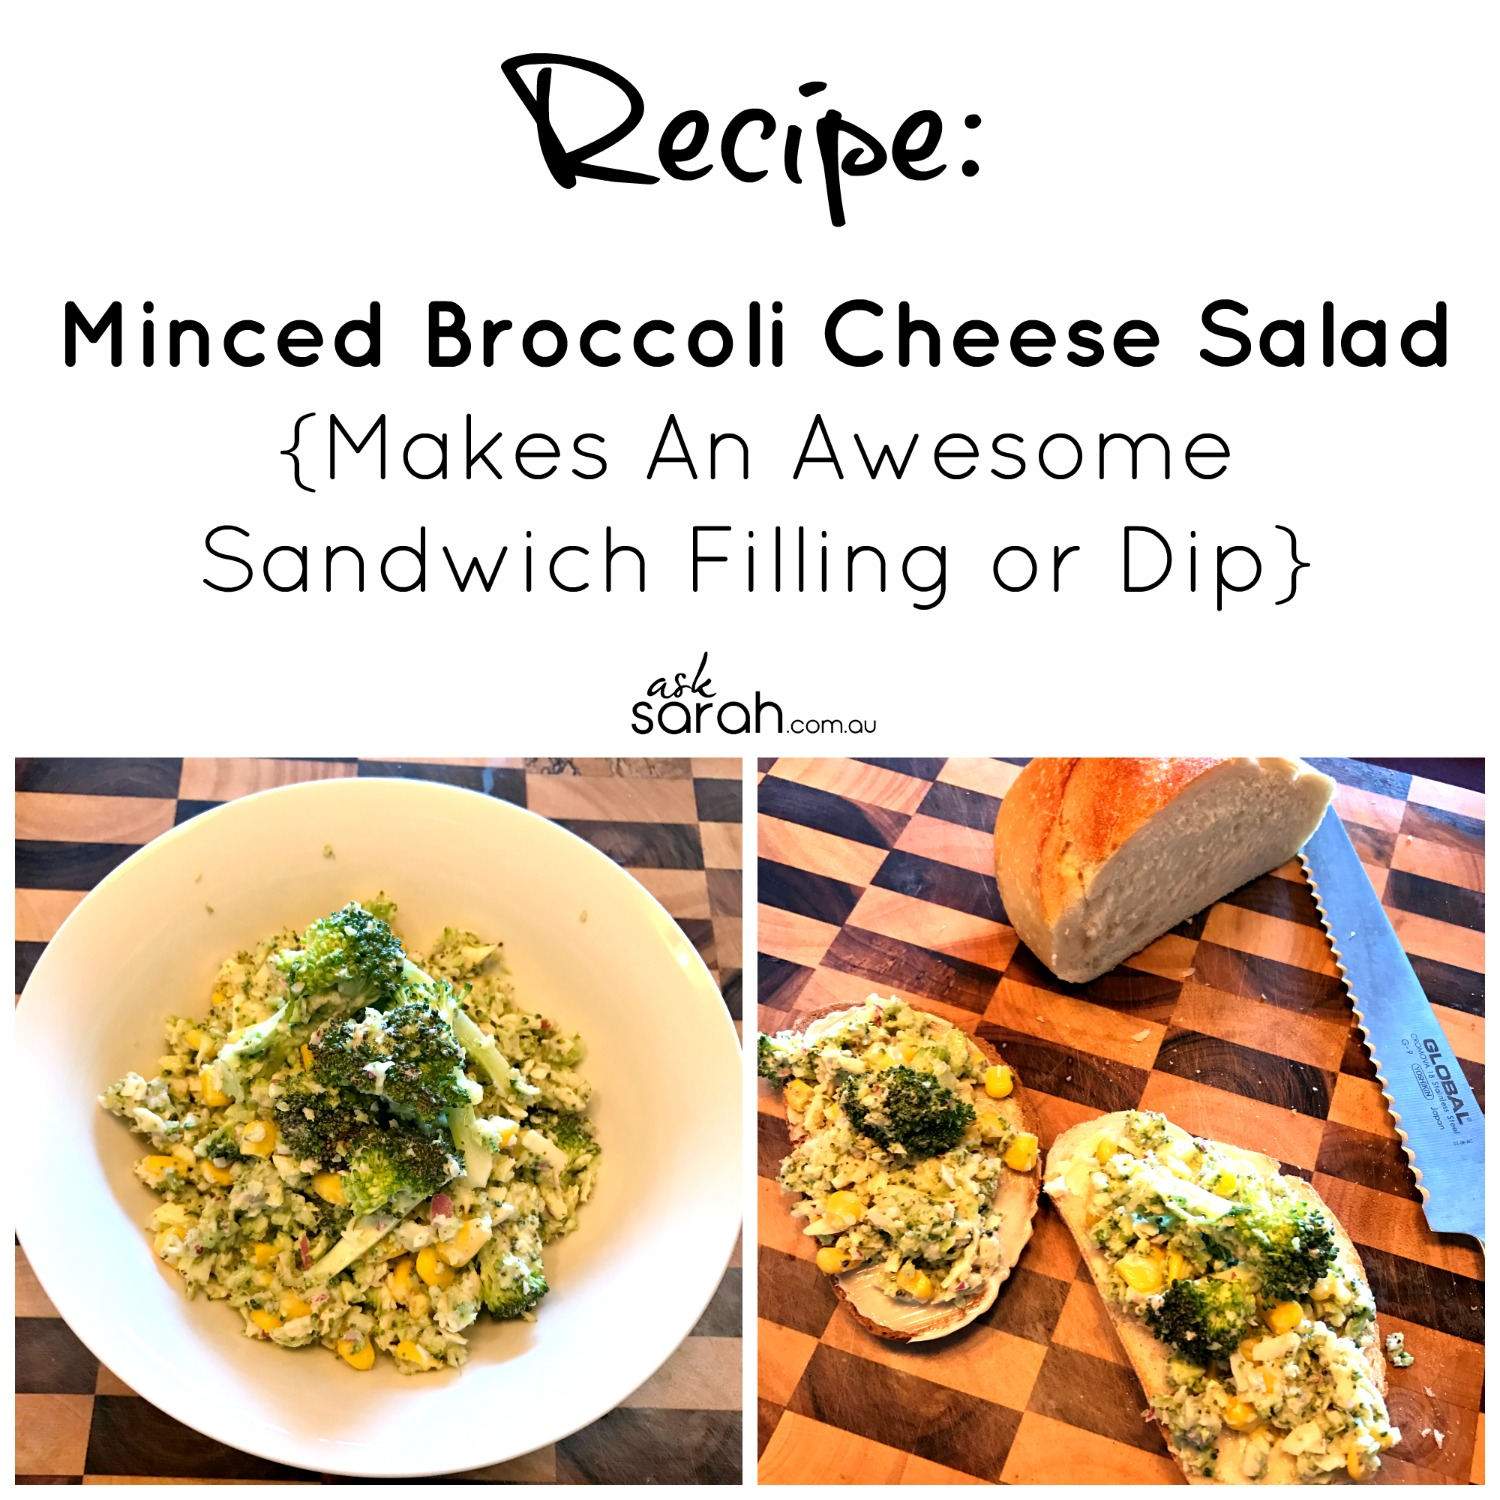 Recipe: Minced Broccoli Cheese Salad {Makes An Awesome Sandwich Filling or Dip}